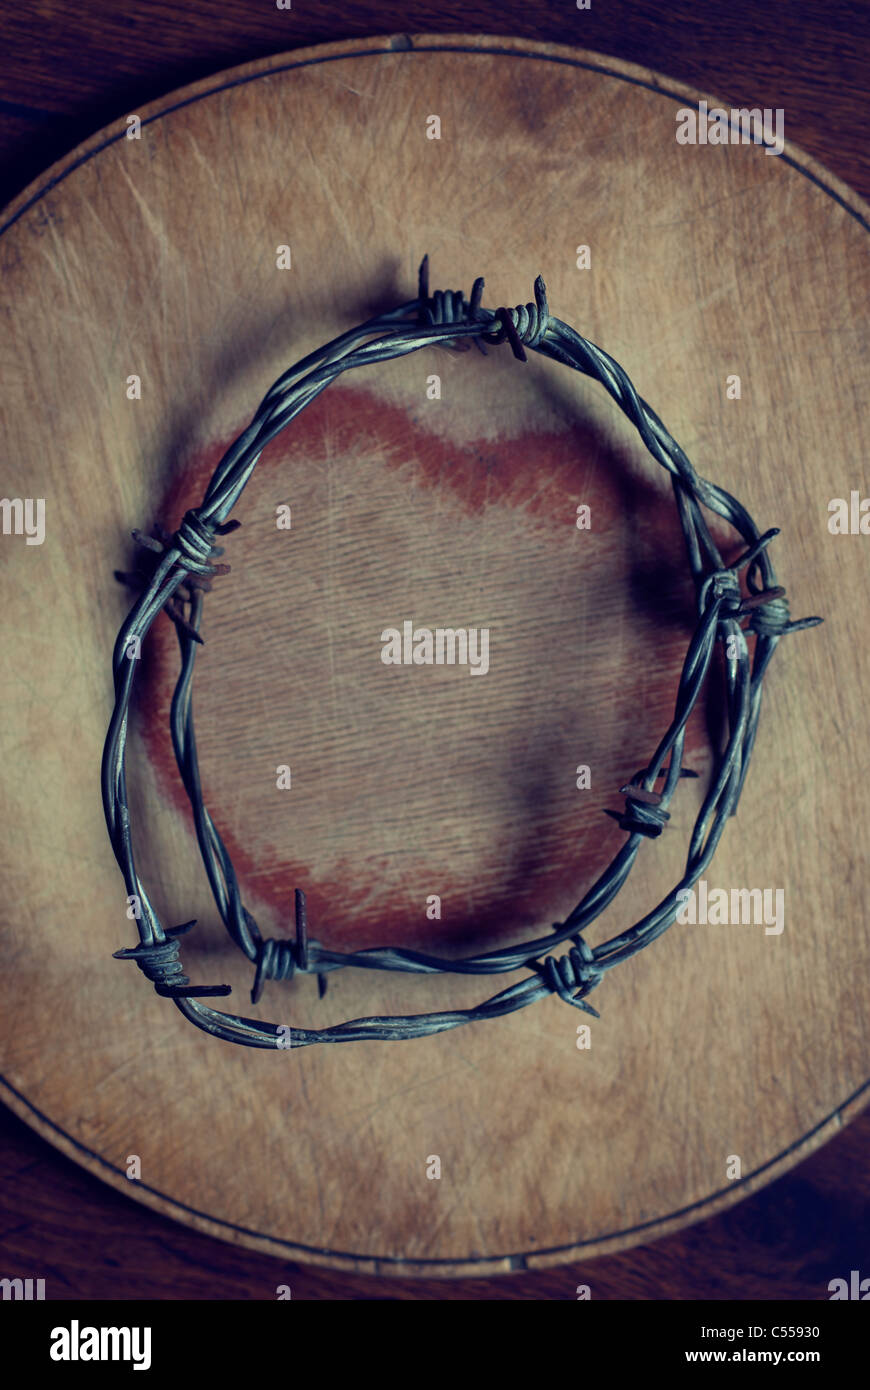 old barbed wire over a heart shape - Stock Image